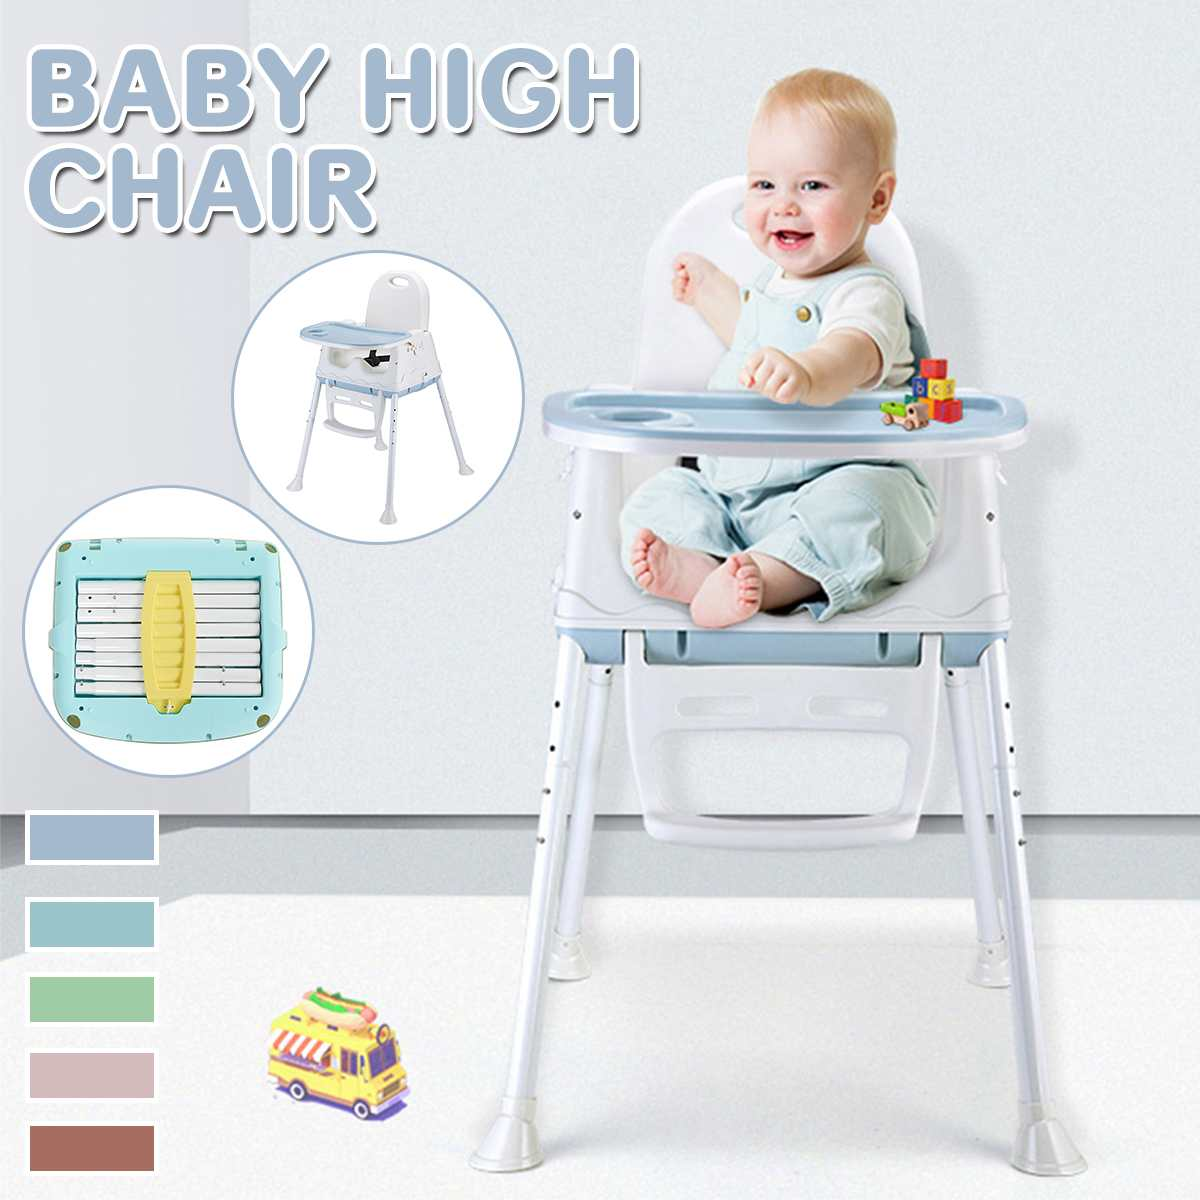 Babies Feed Chair Dining Lunch Chair Safety Baby High Chair For Feeding Folding Children Portable Baby High Chair